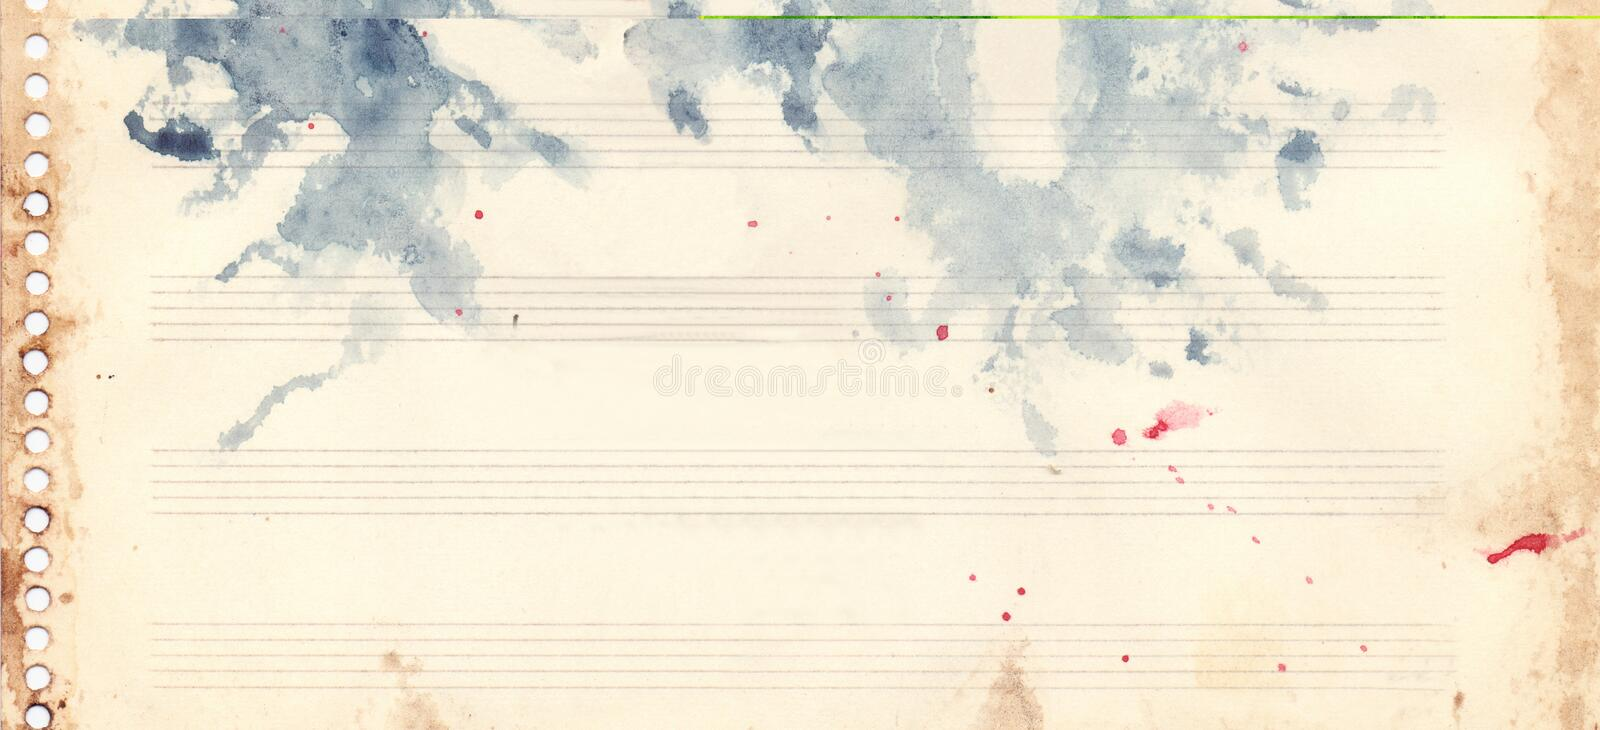 Vintage retro watercolor music sheet background texture grunge royalty free illustration